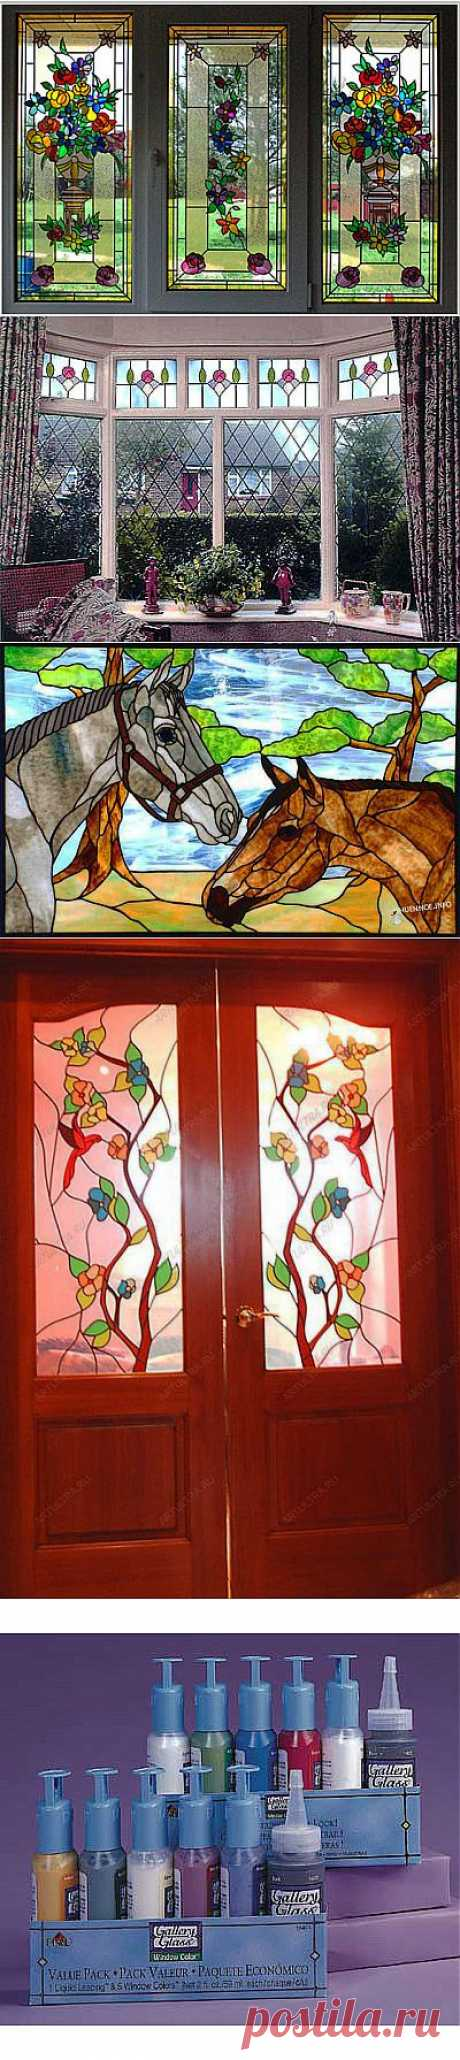 We do stained-glass windows by the hands. How? Now you learn.